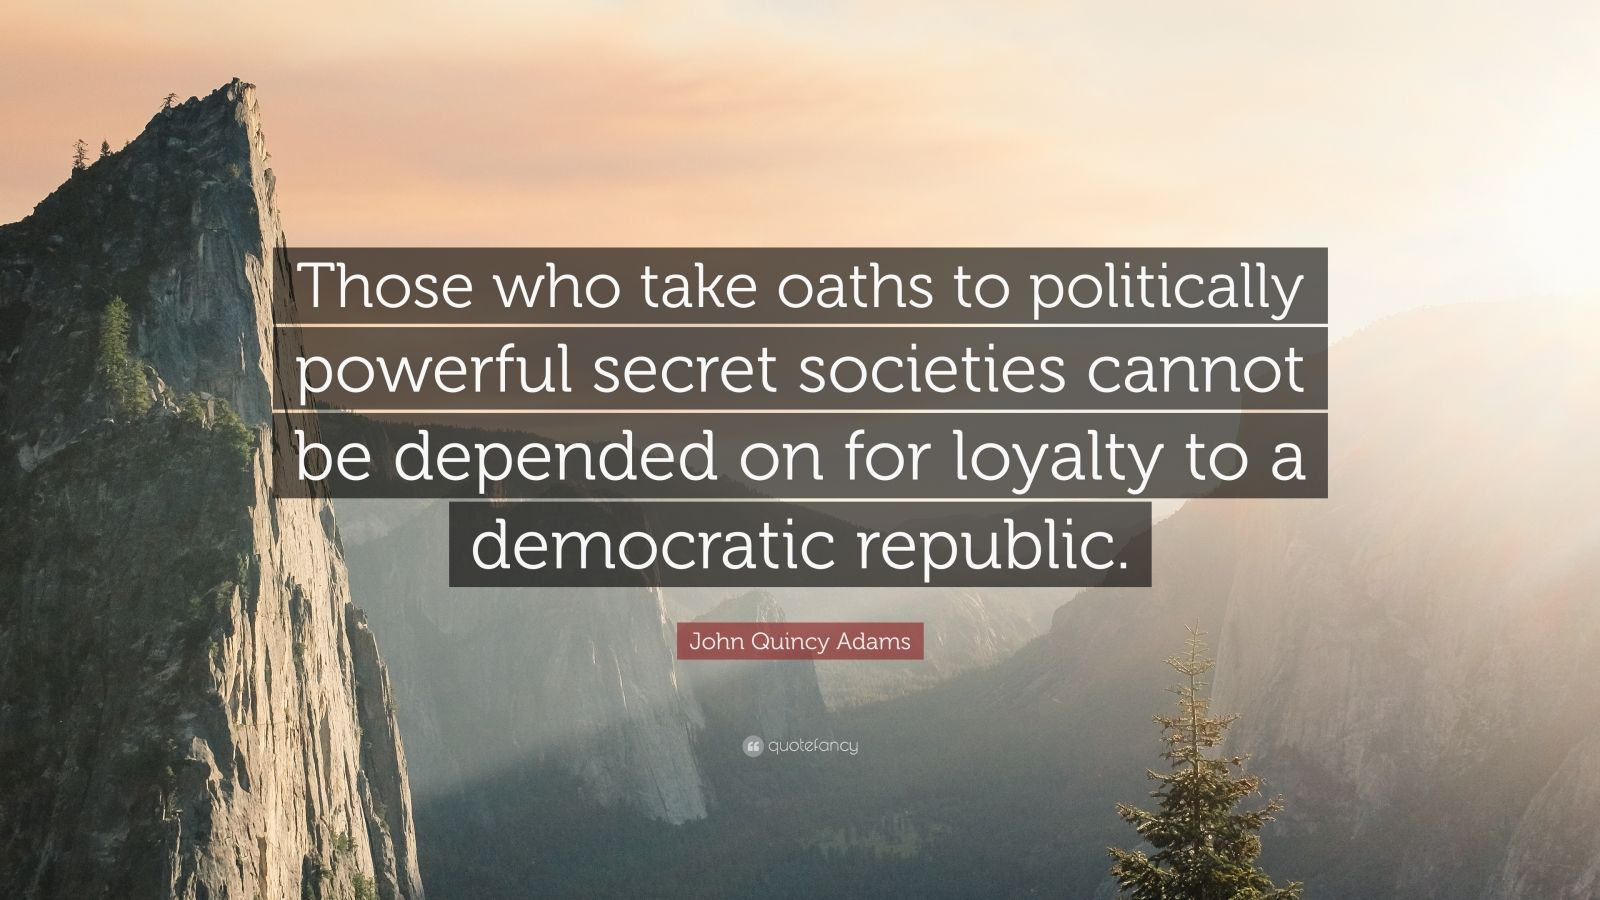 """John Quincy Adams Quote: """"Those who take oaths to politically powerful secret societies cannot be depended on for loyalty to a democratic republic."""""""